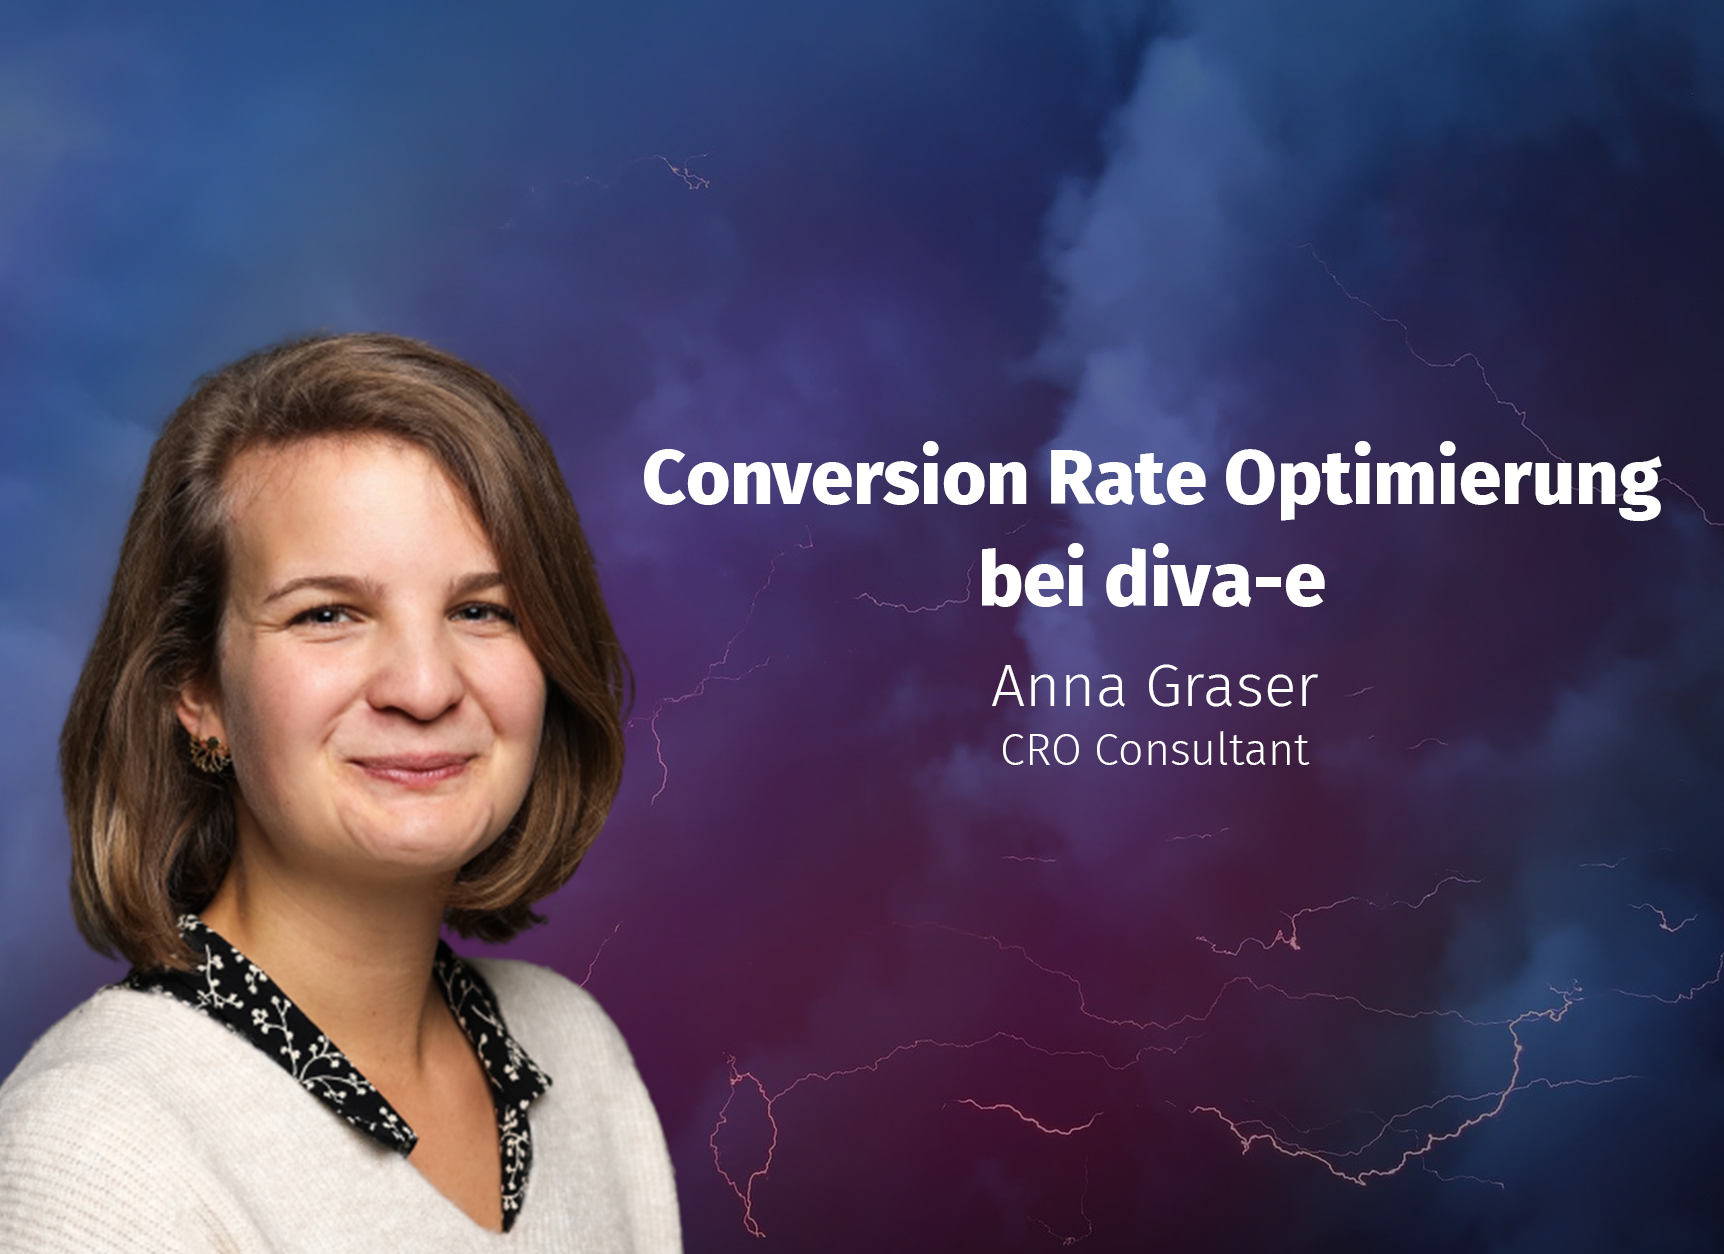 Conversion Rate Optimierung bei diva-e